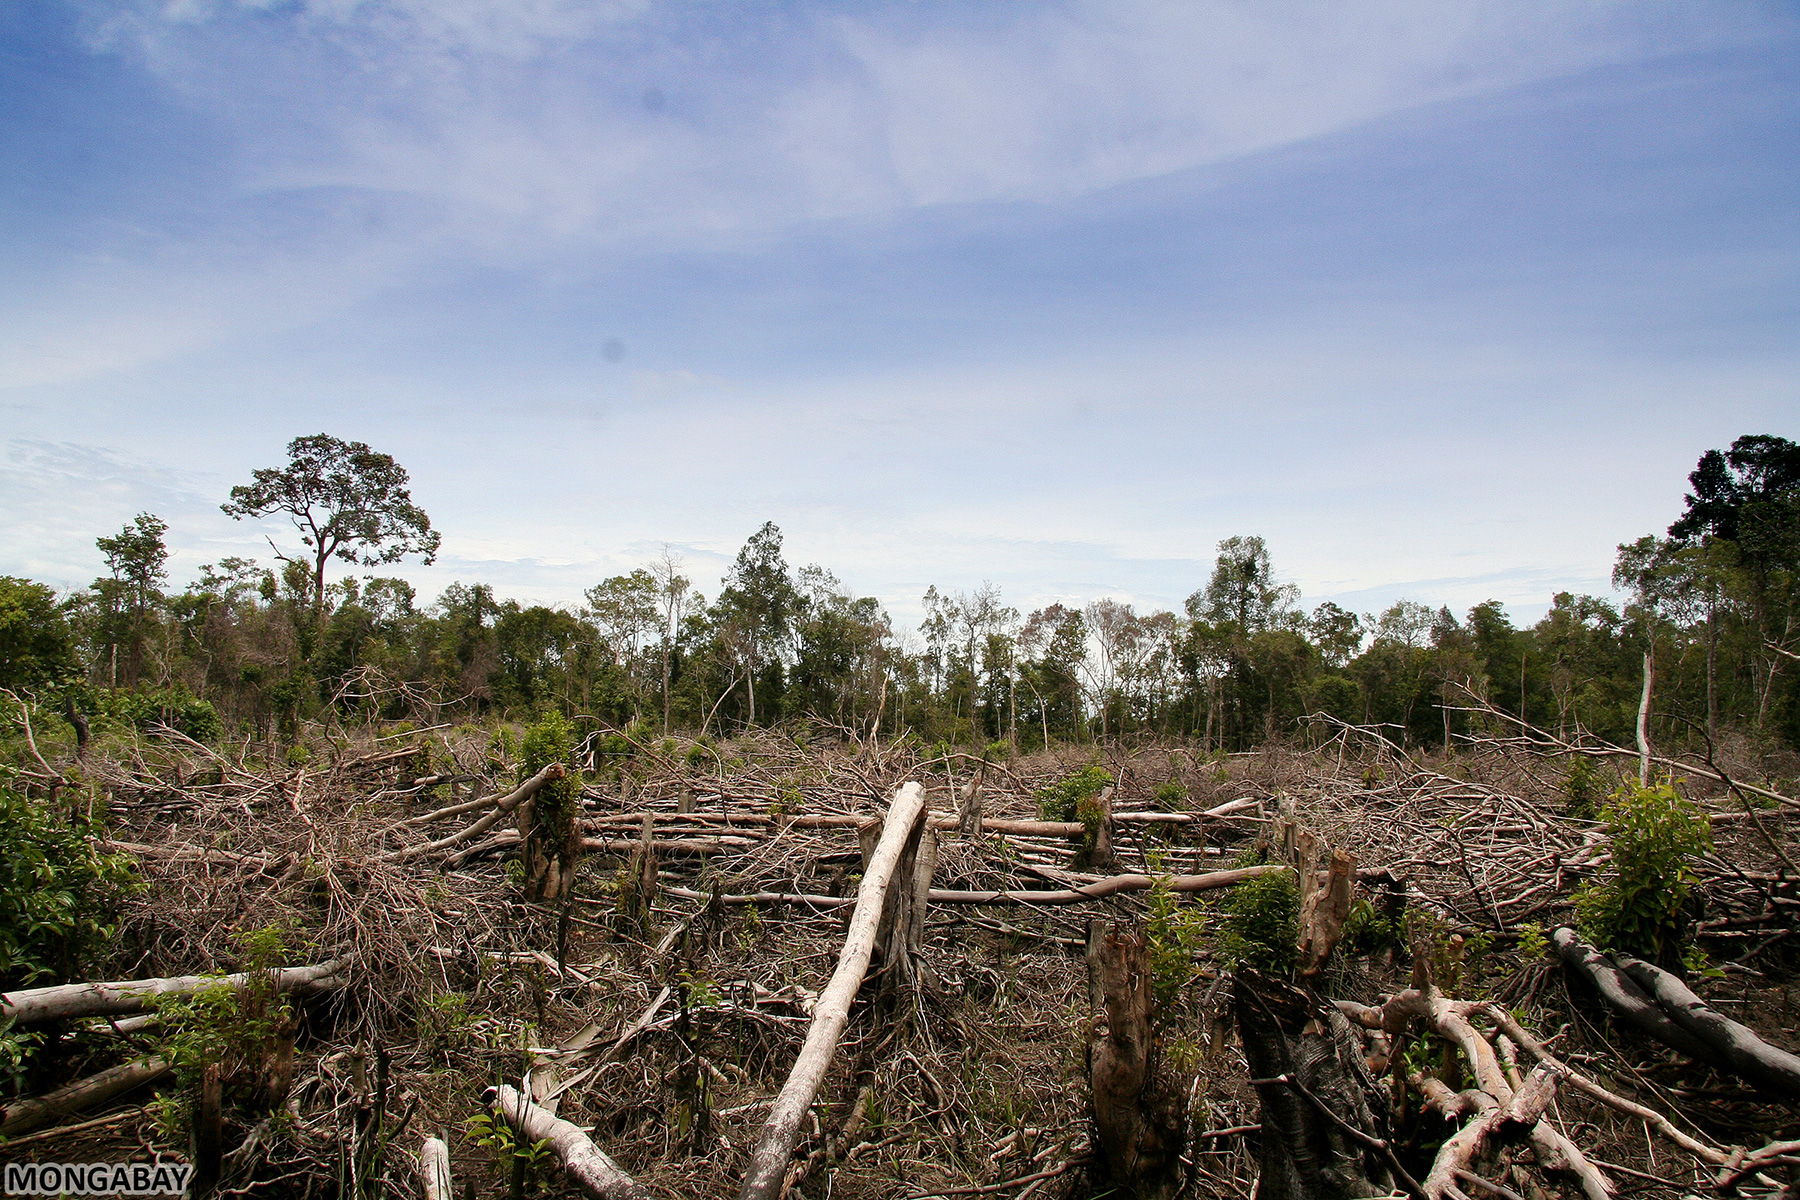 Essay on how people destroy the environment